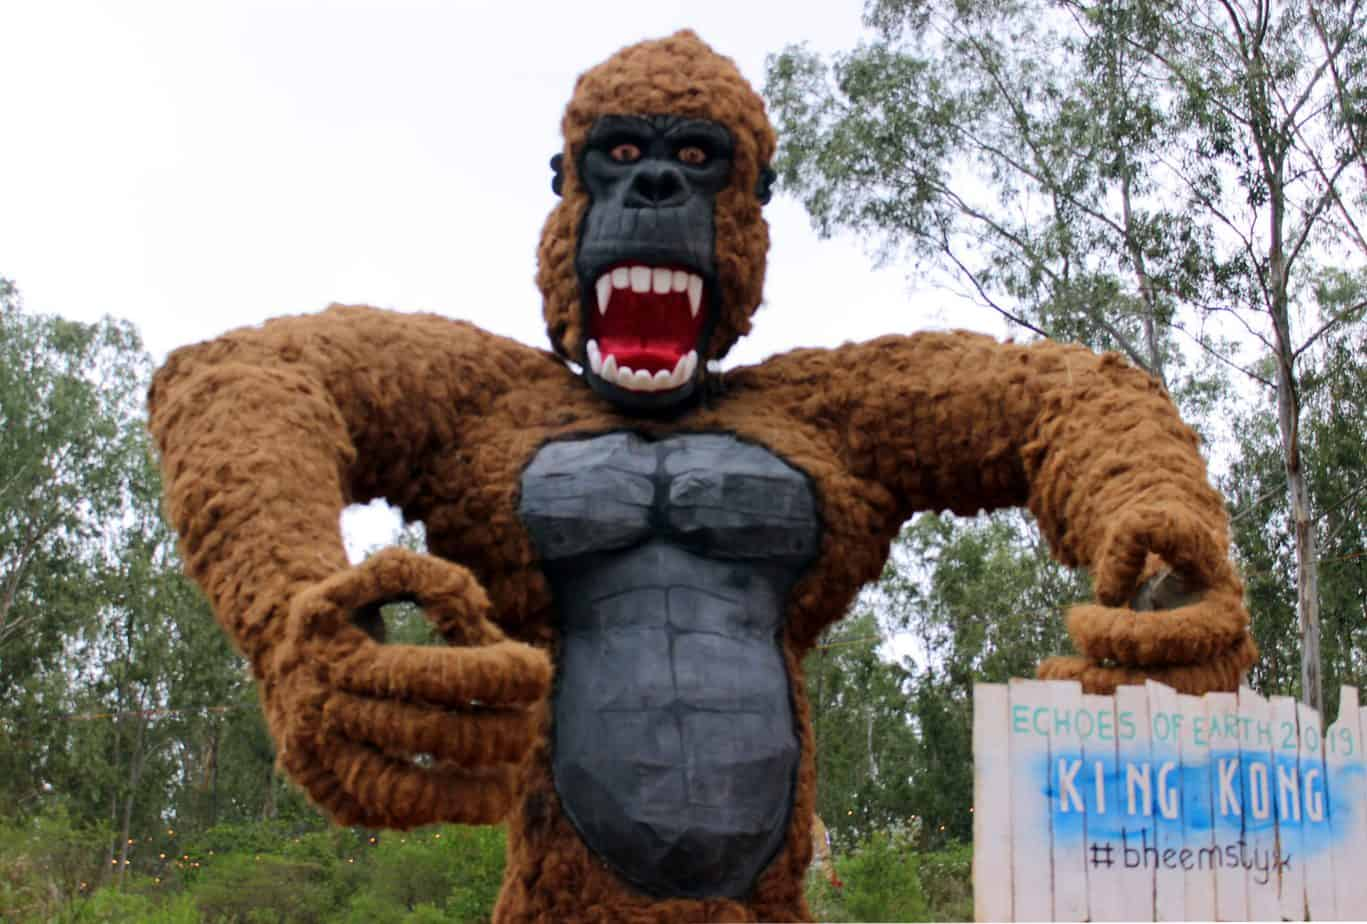 Gorilla made with recycled metal armature, gunny bags, and coir by designer Bheemaiah K.K. Pic: Srijan Sen